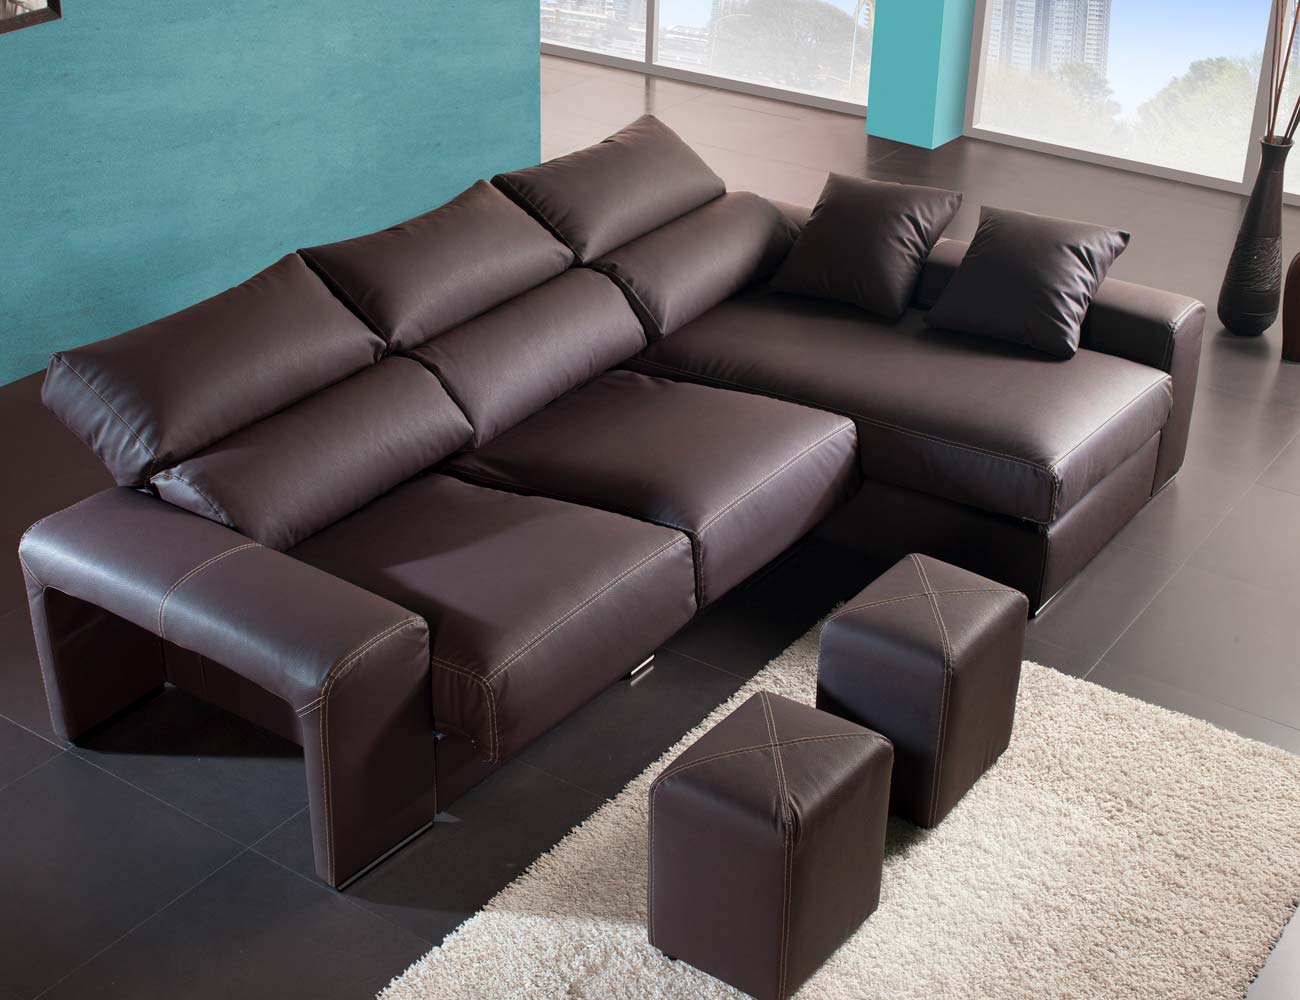 Sofa chaiselongue moderno polipiel chocolate poufs taburetes42